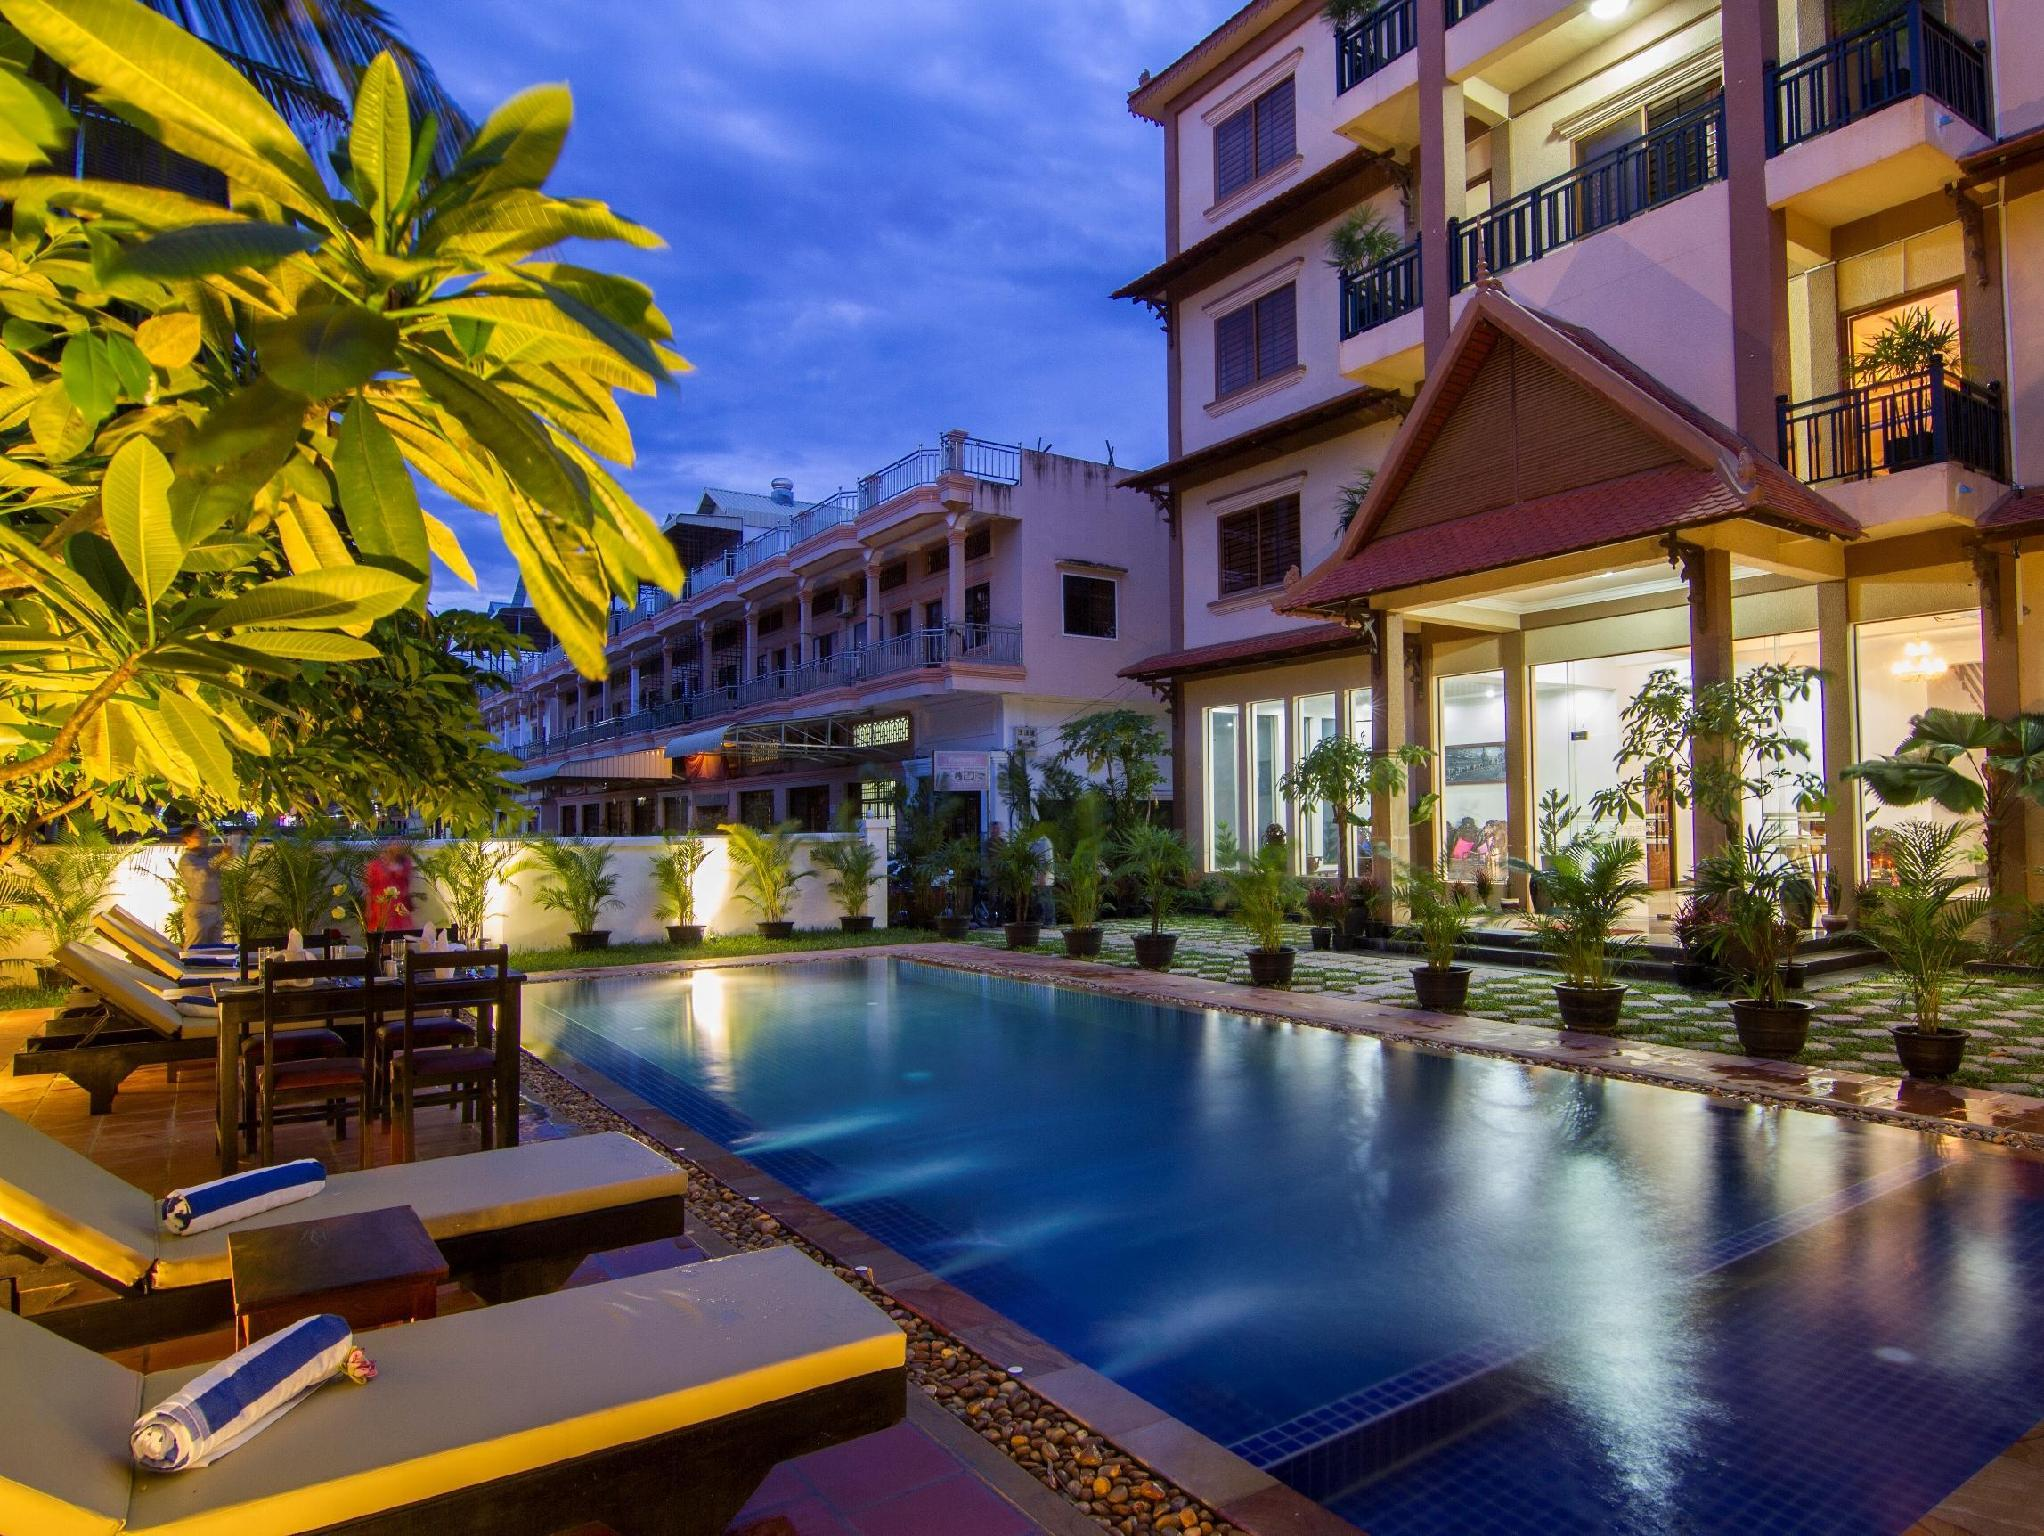 Desire park boutique hotel siem reap central area siem for Boutique hotels near central park